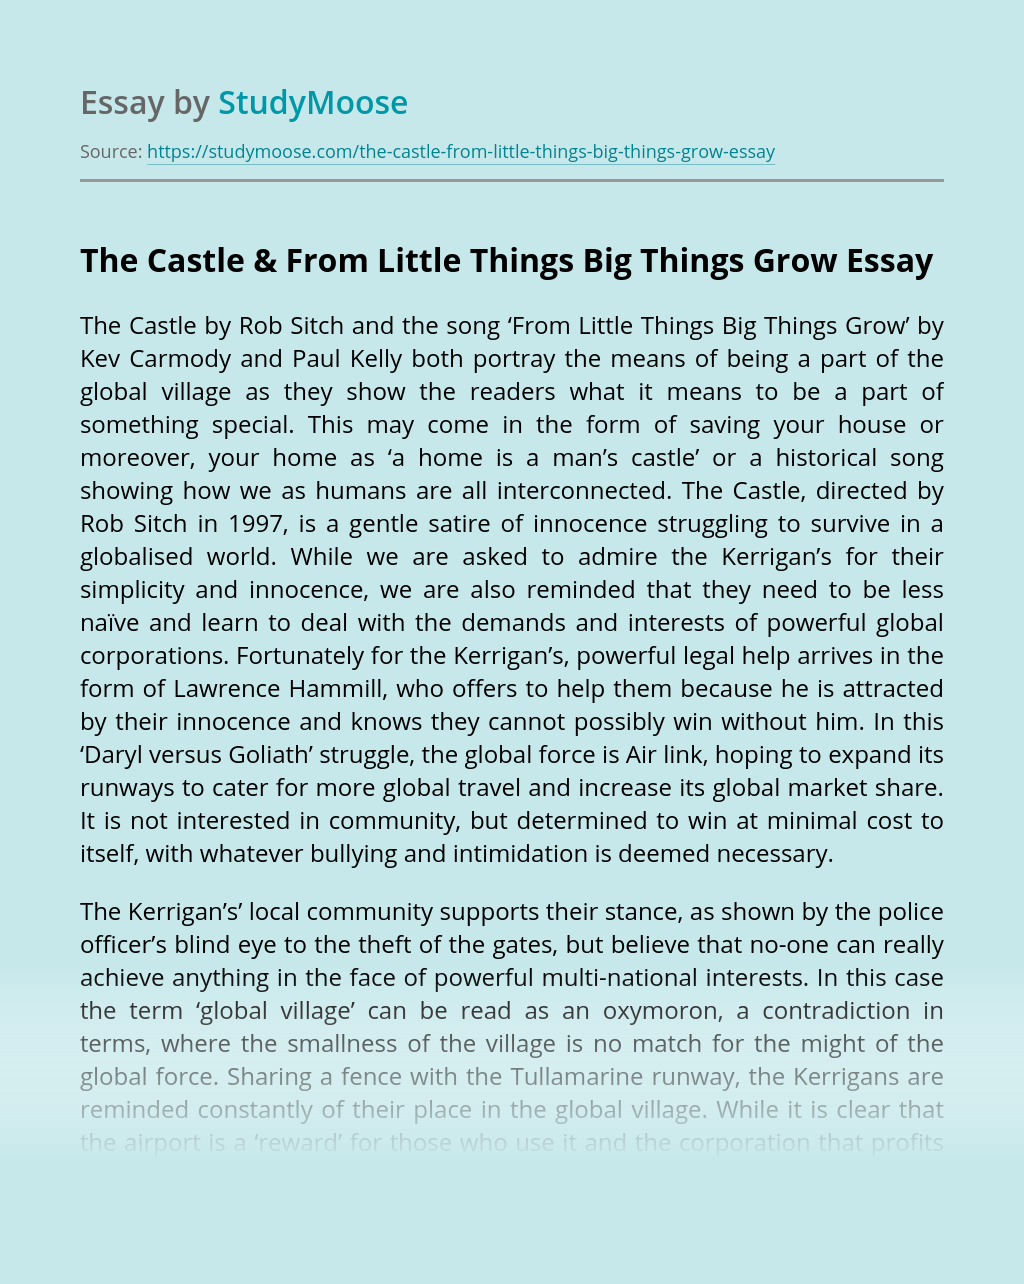 The Castle & From Little Things Big Things Grow